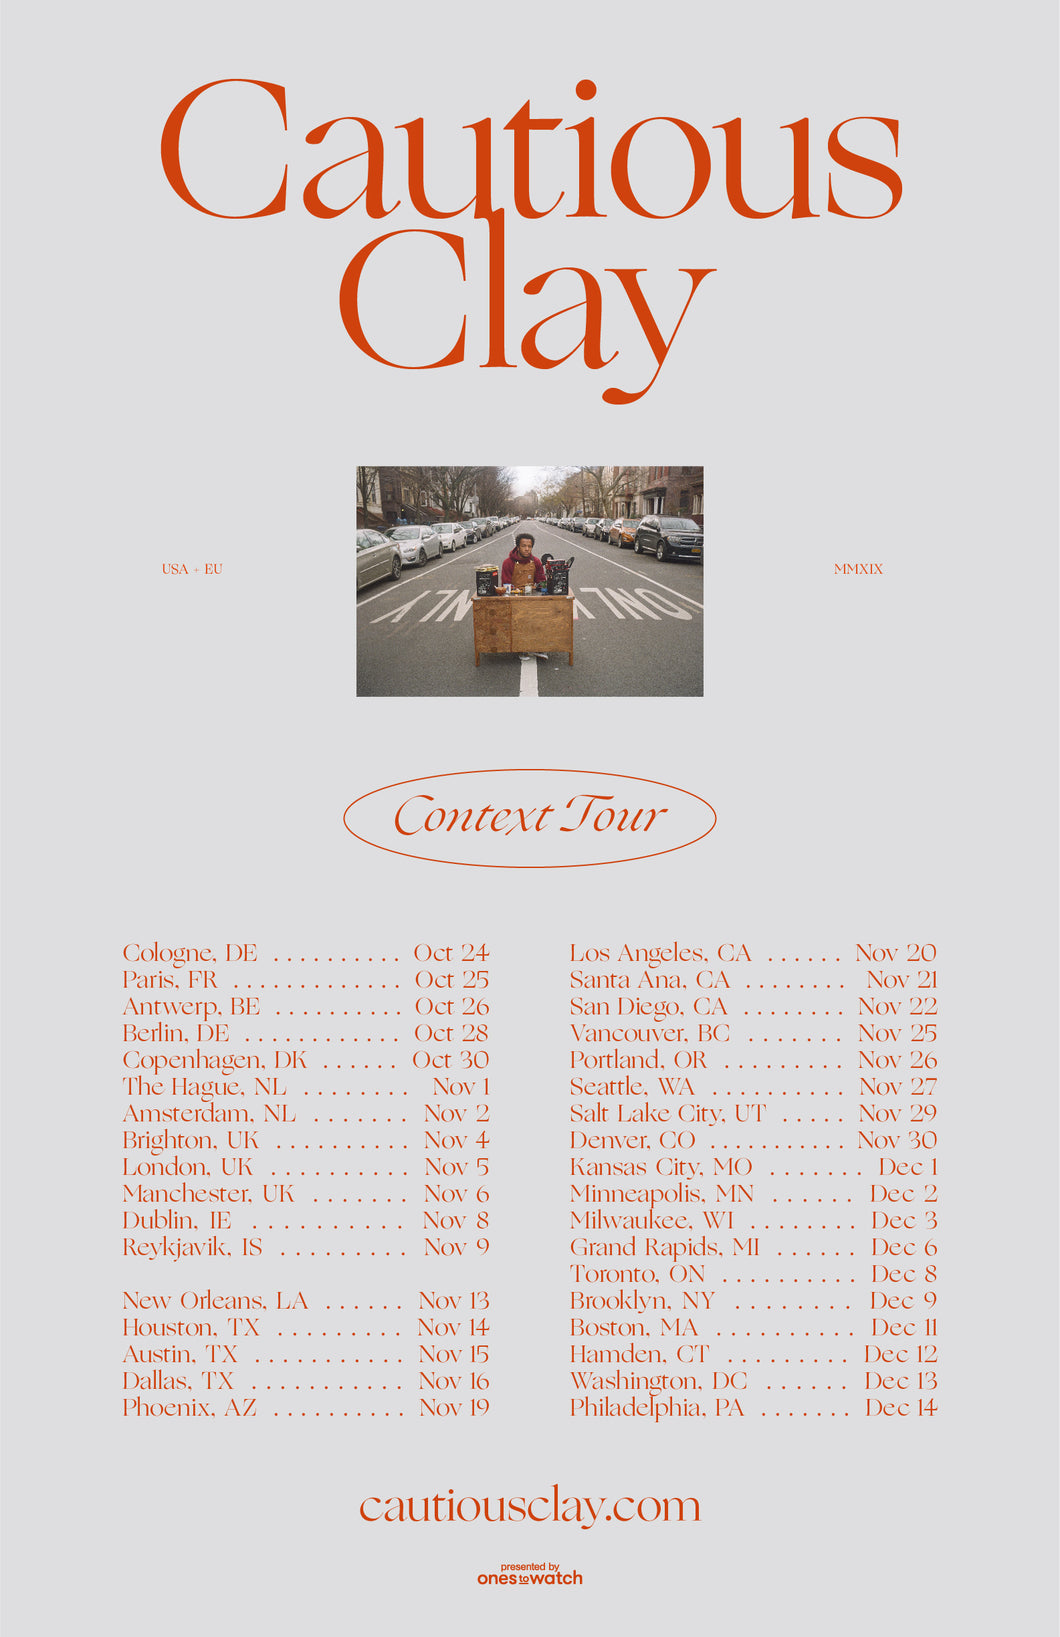 12/14/19 - Philadelphia, PA - Union Transfer - Cautious Clay Meet & Greet Upgrade Package